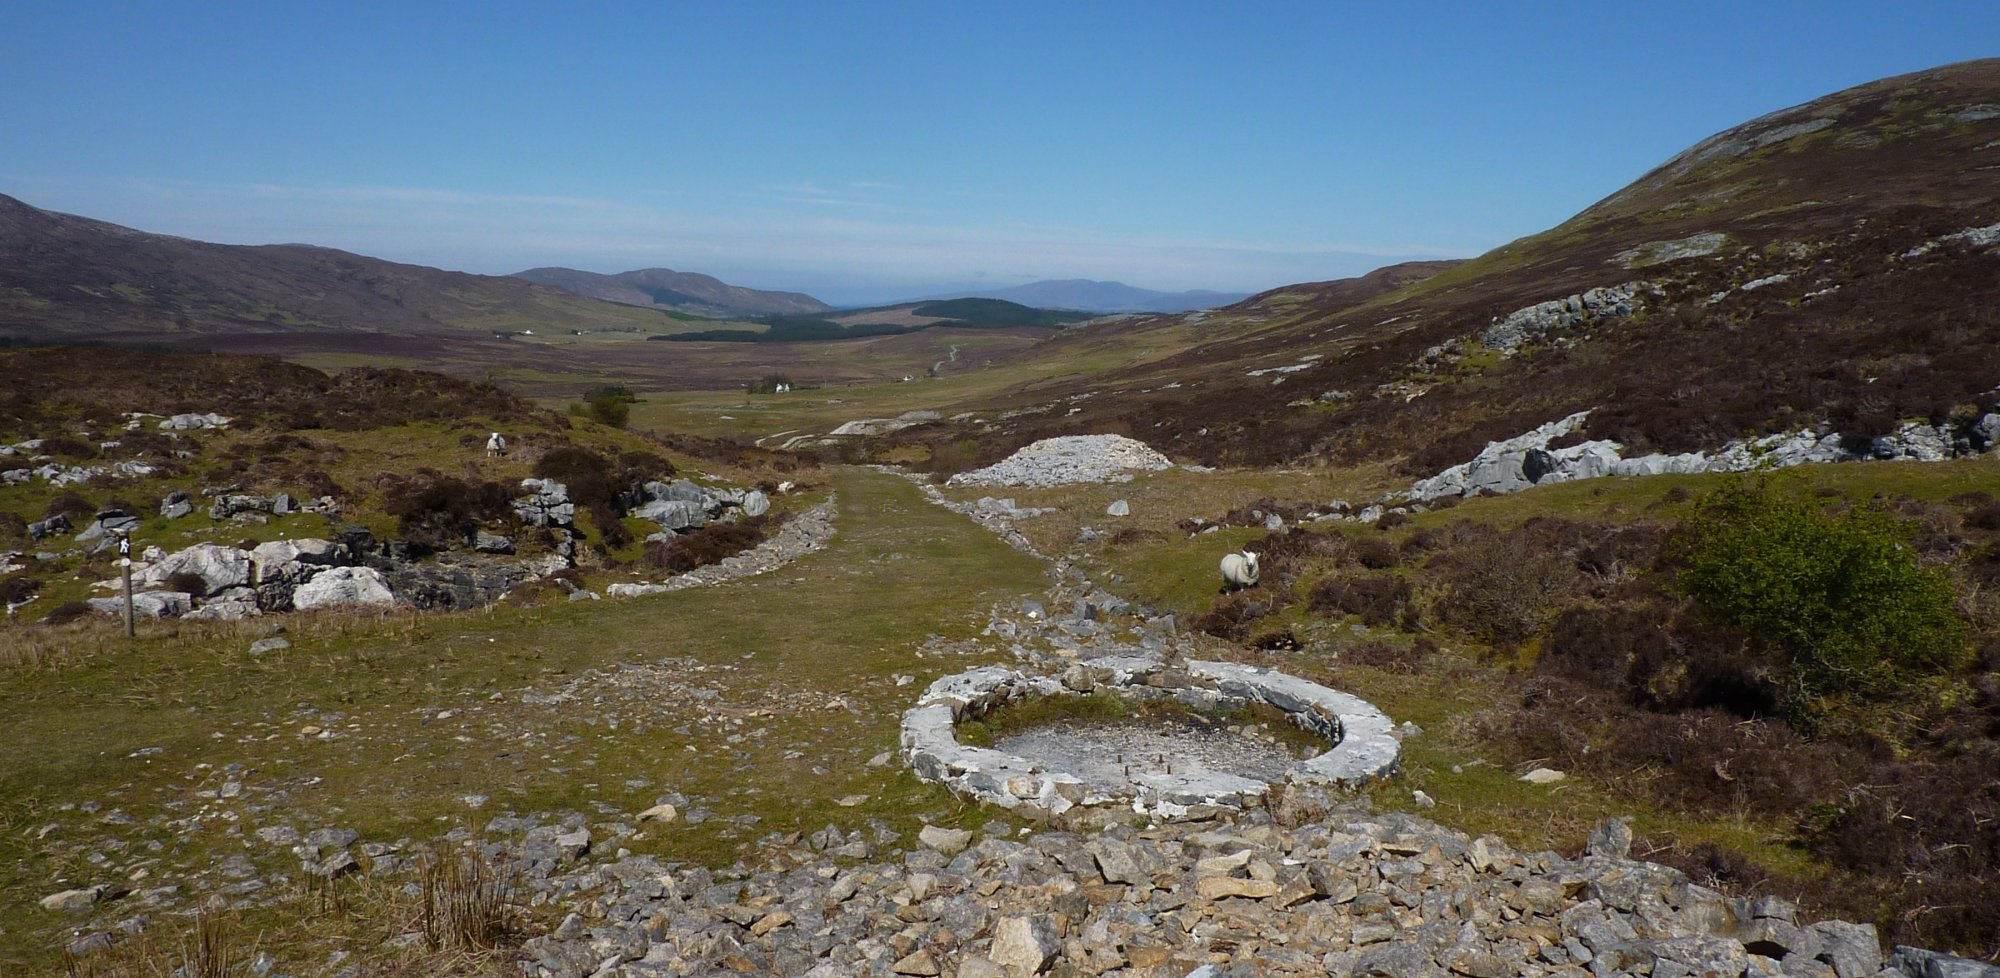 The marble workings in Strath Suardal, the circular structure is what remains of the winding gear